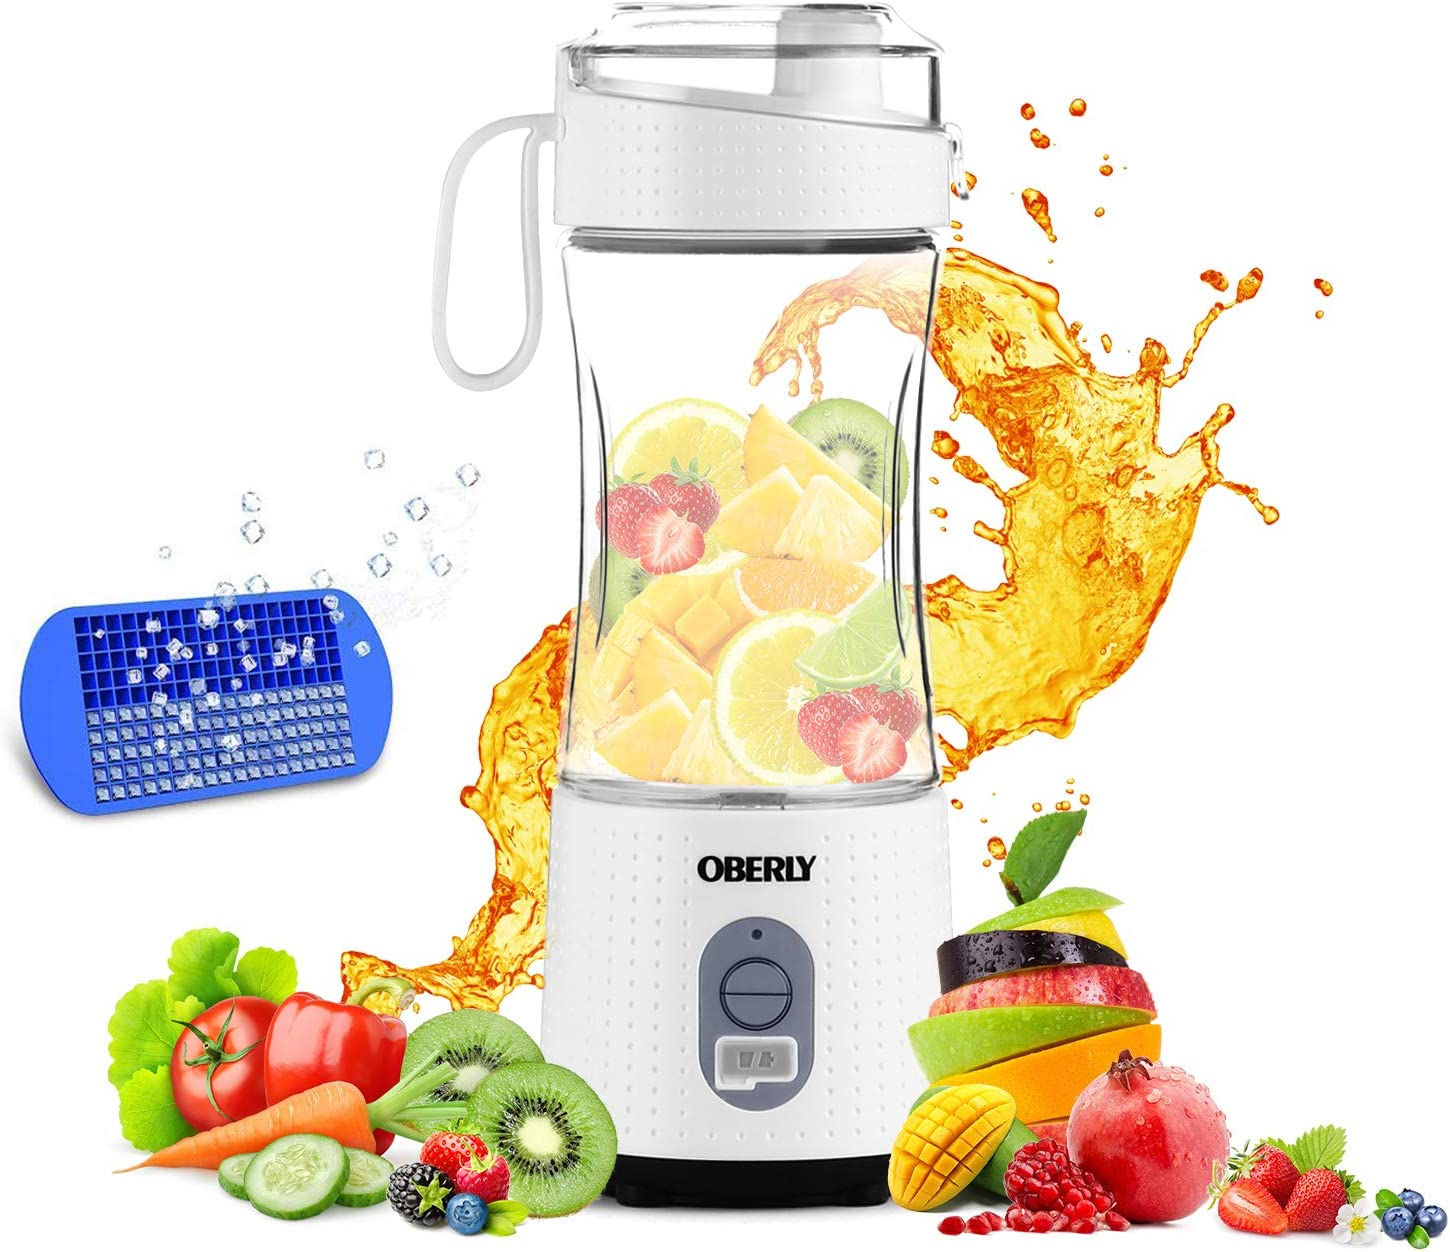 Portable Blender, OBERLY Personal Juicer Cup for Shakes and Smoothies - Six Blades in 3D, 13oz Fruit Mixing Machine with 4000mAh USB Rechargeable Batteries, Ice Tray, Detachable Cup, Perfect Blender for Travel, Outdoor